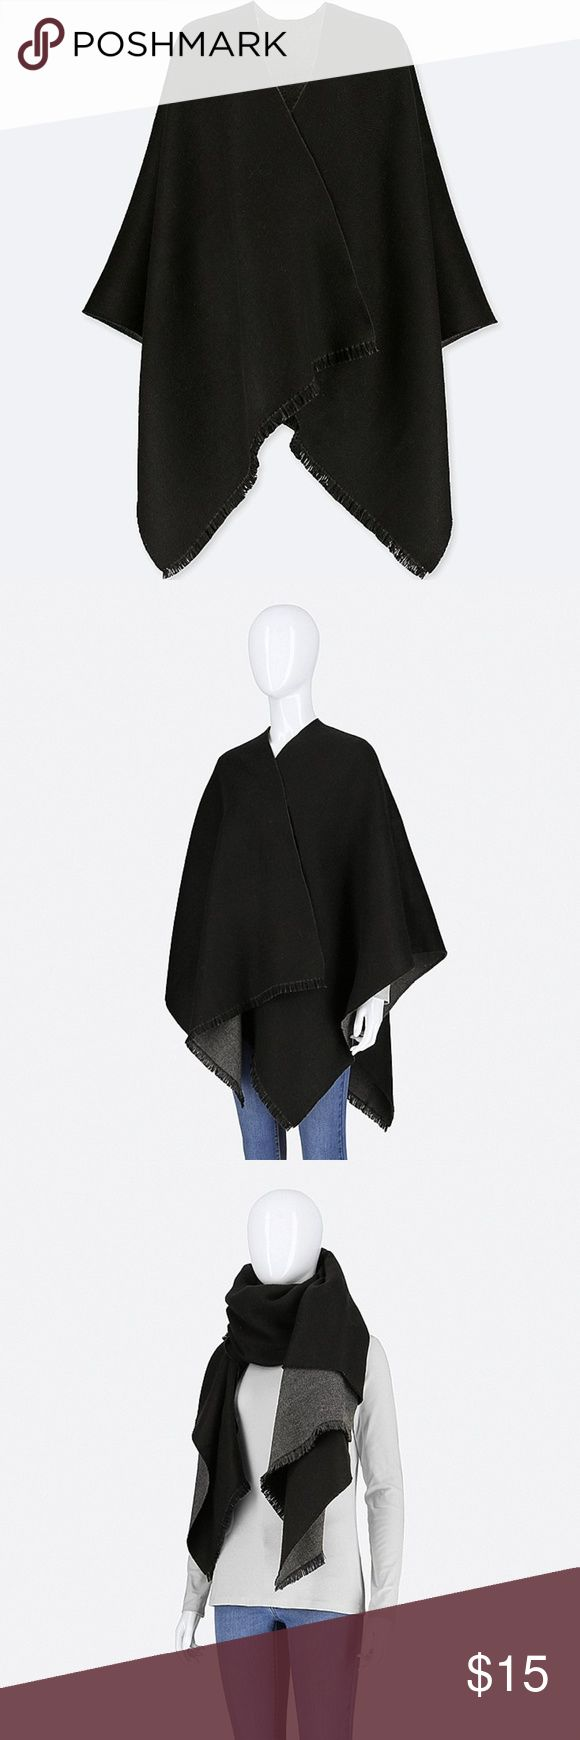 Black Uniqlo Reversible 2-Way Stole Brand new with tags. An elegant wool-blend stole that can also be worn as a wrap or poncho. Large size lets you wear it as a stole or wrap. A notched neck helps keep it in place when wearing it on your shoulders.   -100% Acrylic -Imported Uniqlo Accessories Scarves & Wraps